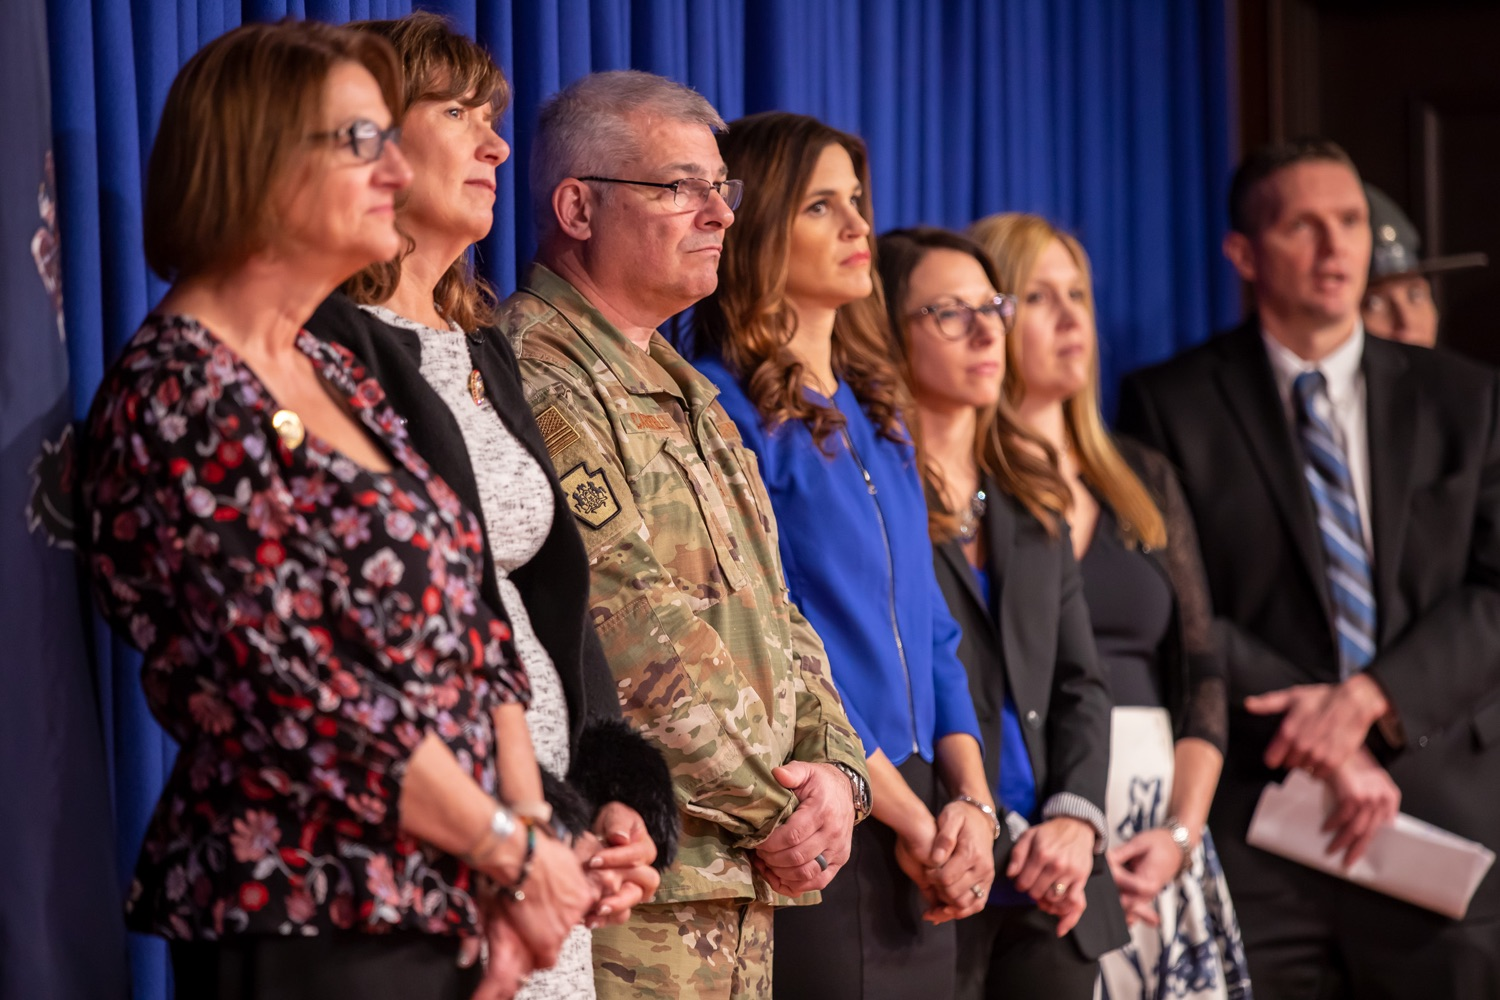 """<a href=""""http://filesource.abacast.com/commonwealthofpa/photo/17711_DHS_SuicidePrevention_AG_11.jpg"""" target=""""_blank"""">⇣Download Photo<br></a>Harrisburg, PA.  Governor Tom Wolf today announced the initial report of Pennsylvanias Suicide Prevention Task Force based on the statewide listening sessions held throughout fall 2019. The work of the Suicide Prevention Task Force is a complement to the goals and strategies surrounding the governors Reach Out PA: Your Mental Health Matters initiative announced earlier this month and his Executive Order to protect vulnerable populations signed last year.  January 14, 2020."""